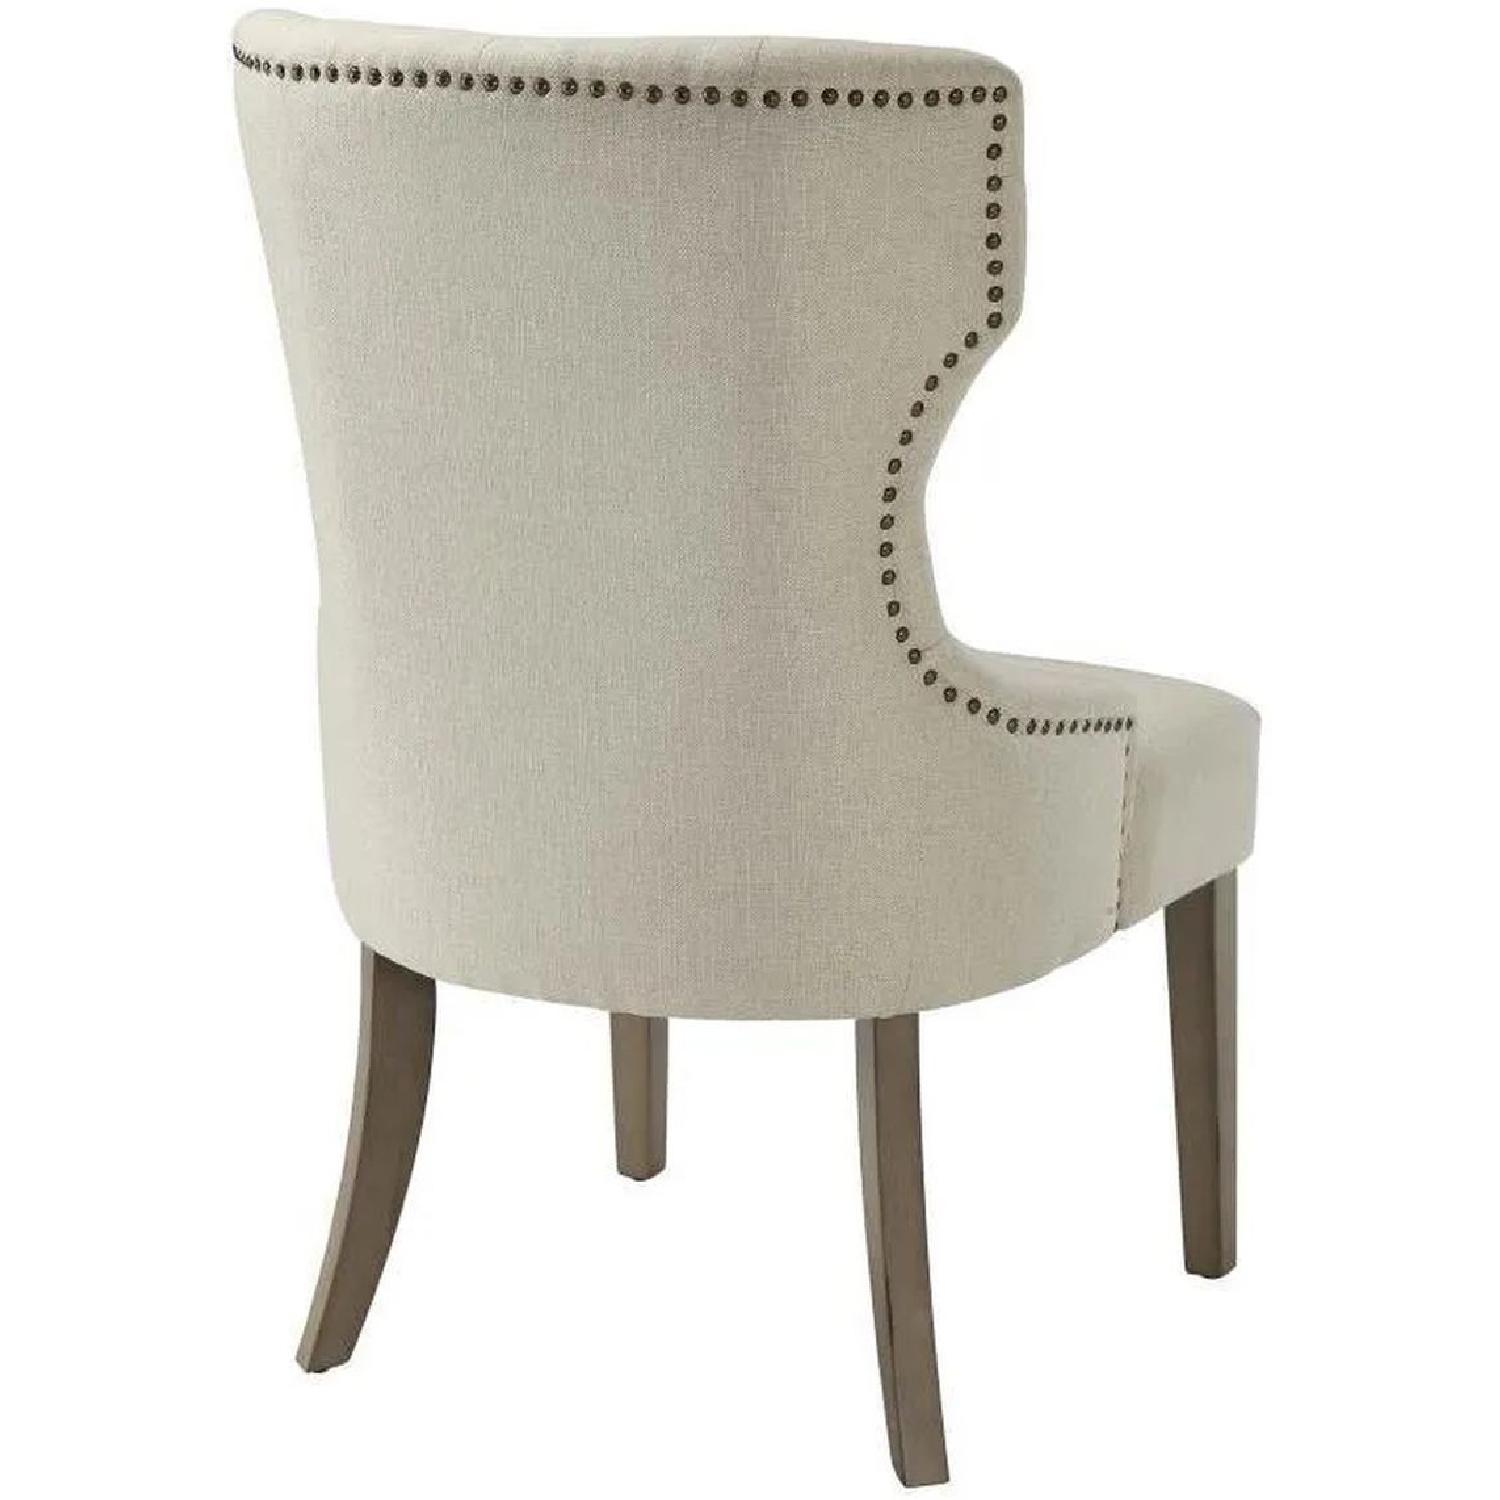 Dining Chair In Beige Fabric w/ Tufted Button & Nailheads - image-1